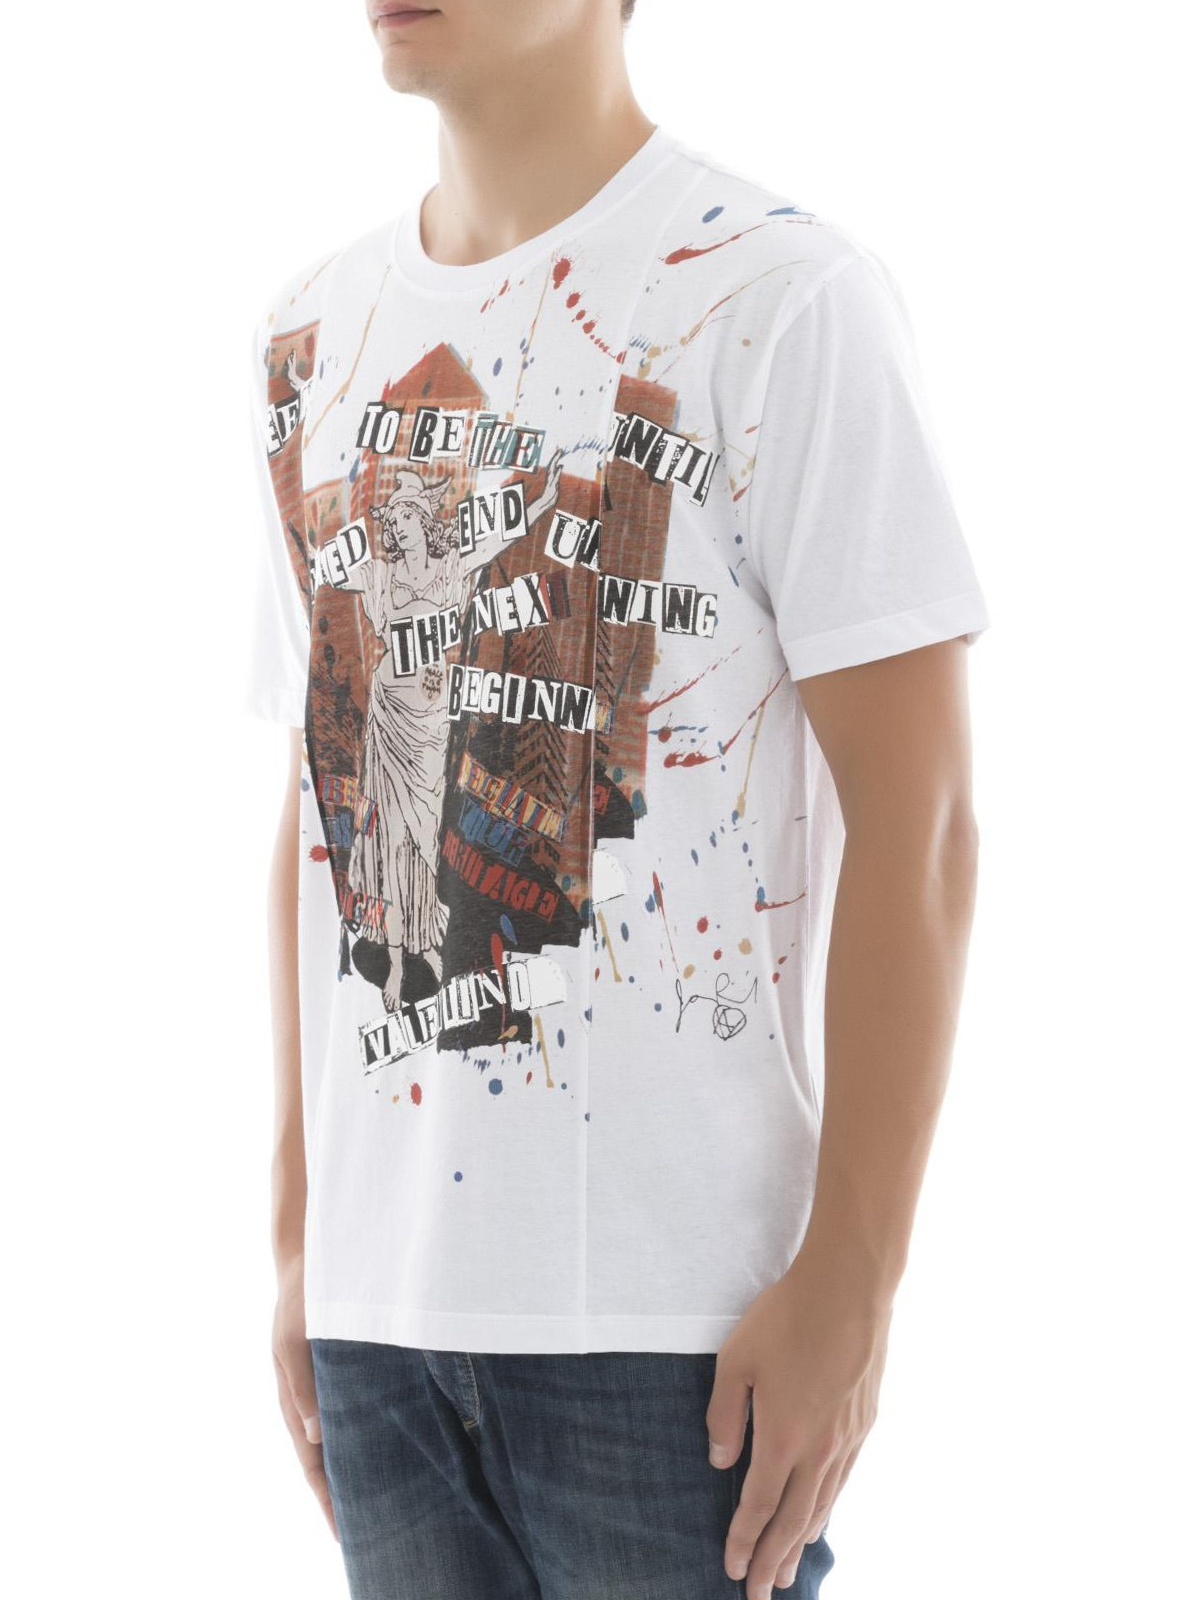 Jamie reid printed tee by valentino t shirts shop for T shirt printers online